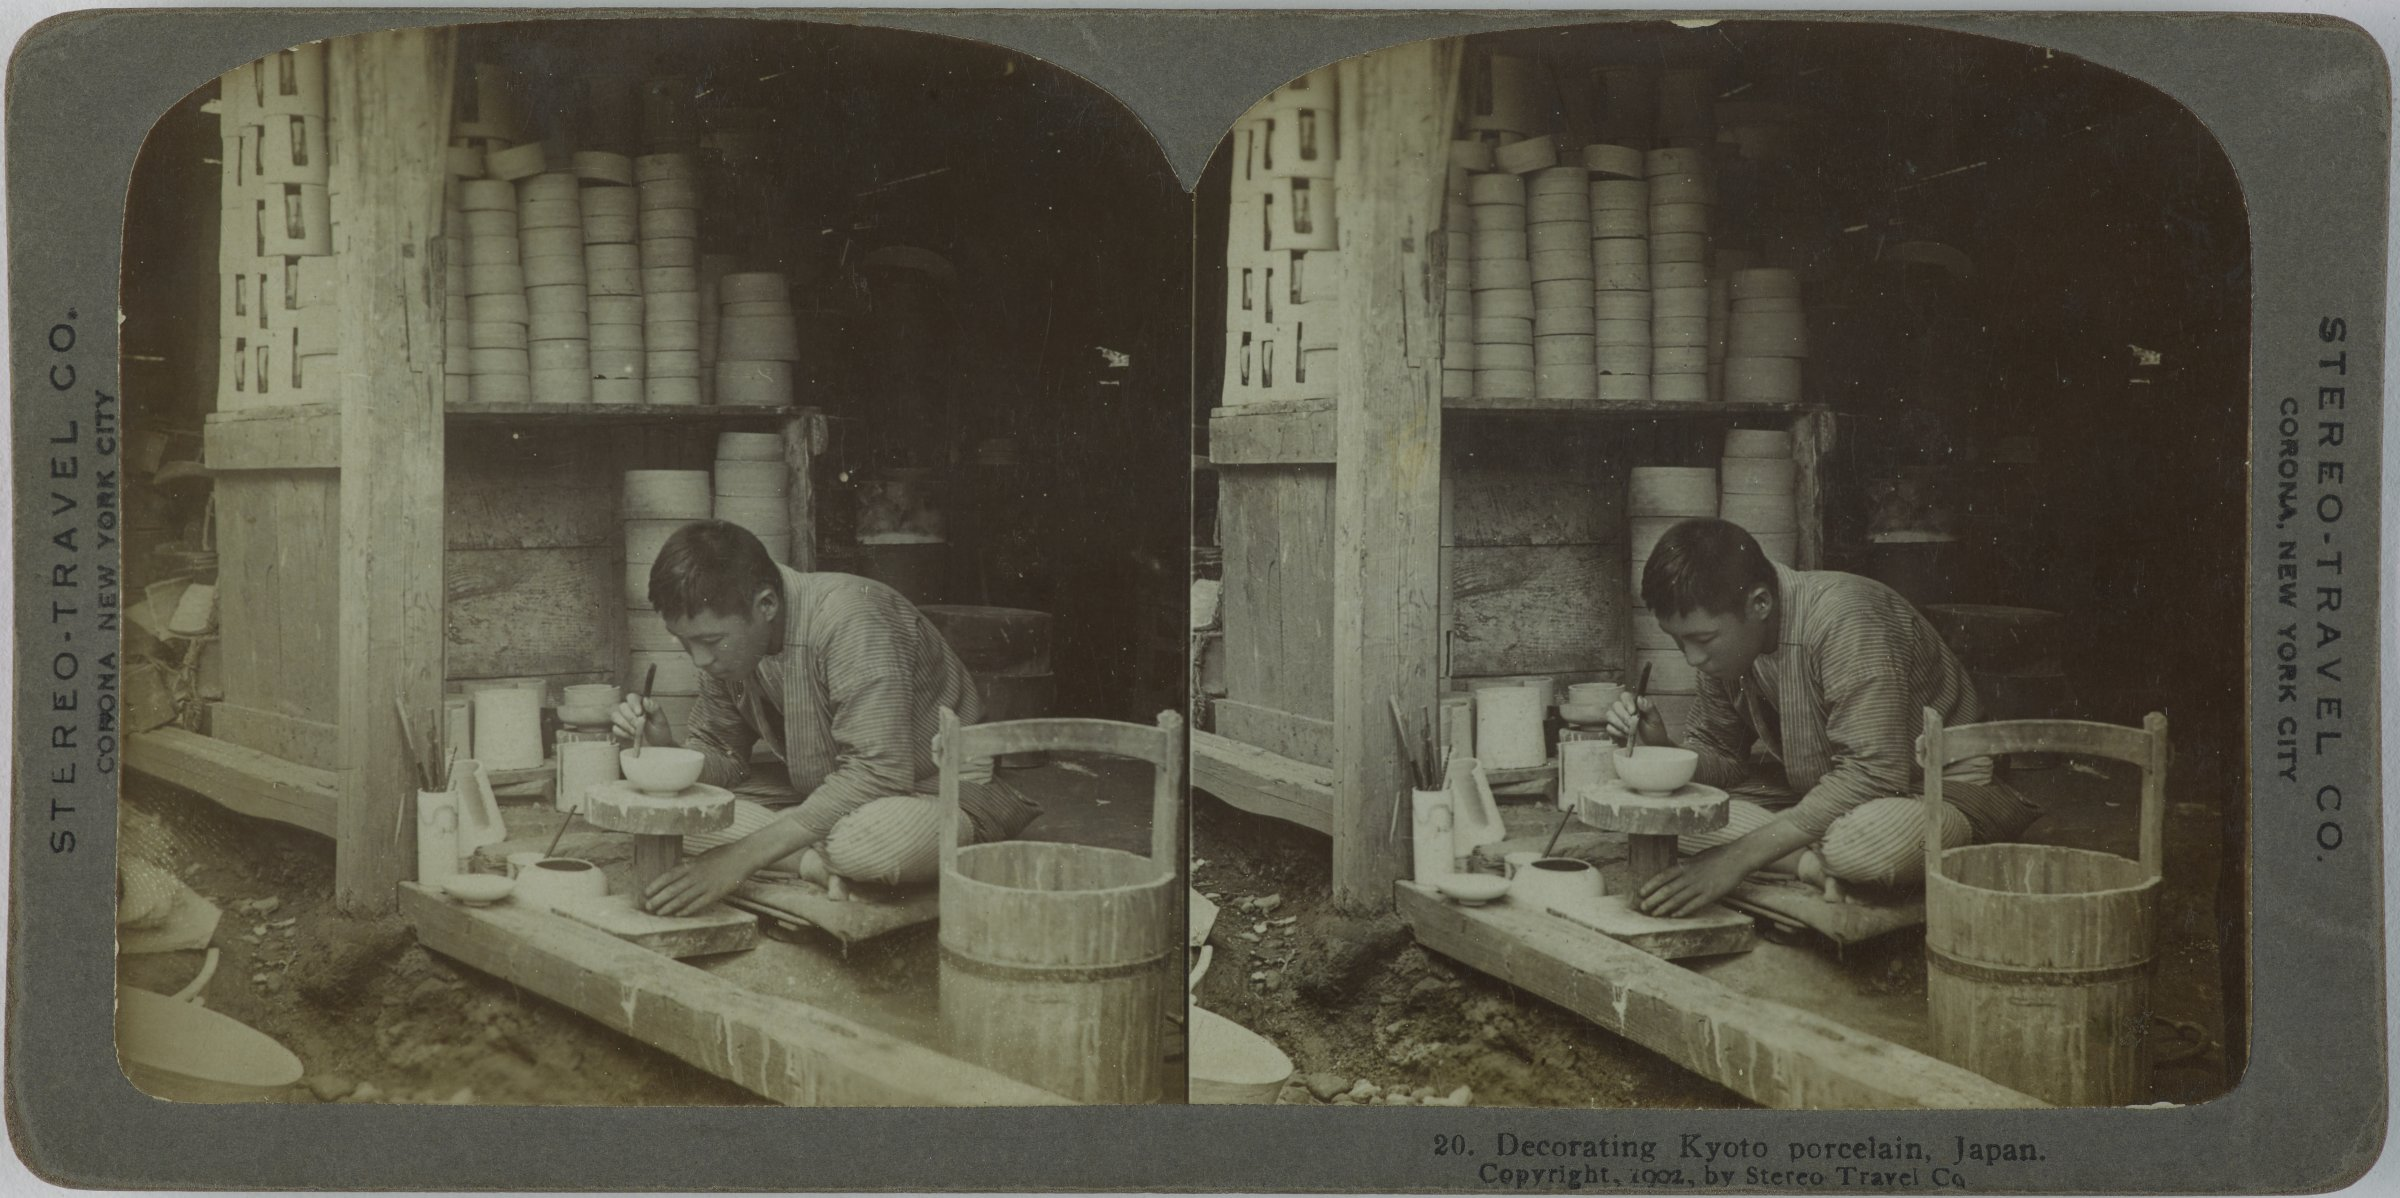 Decorating Kyoto Porcelain, Japan, Stereo-Travel Co., gelatin silver prints mounted on card